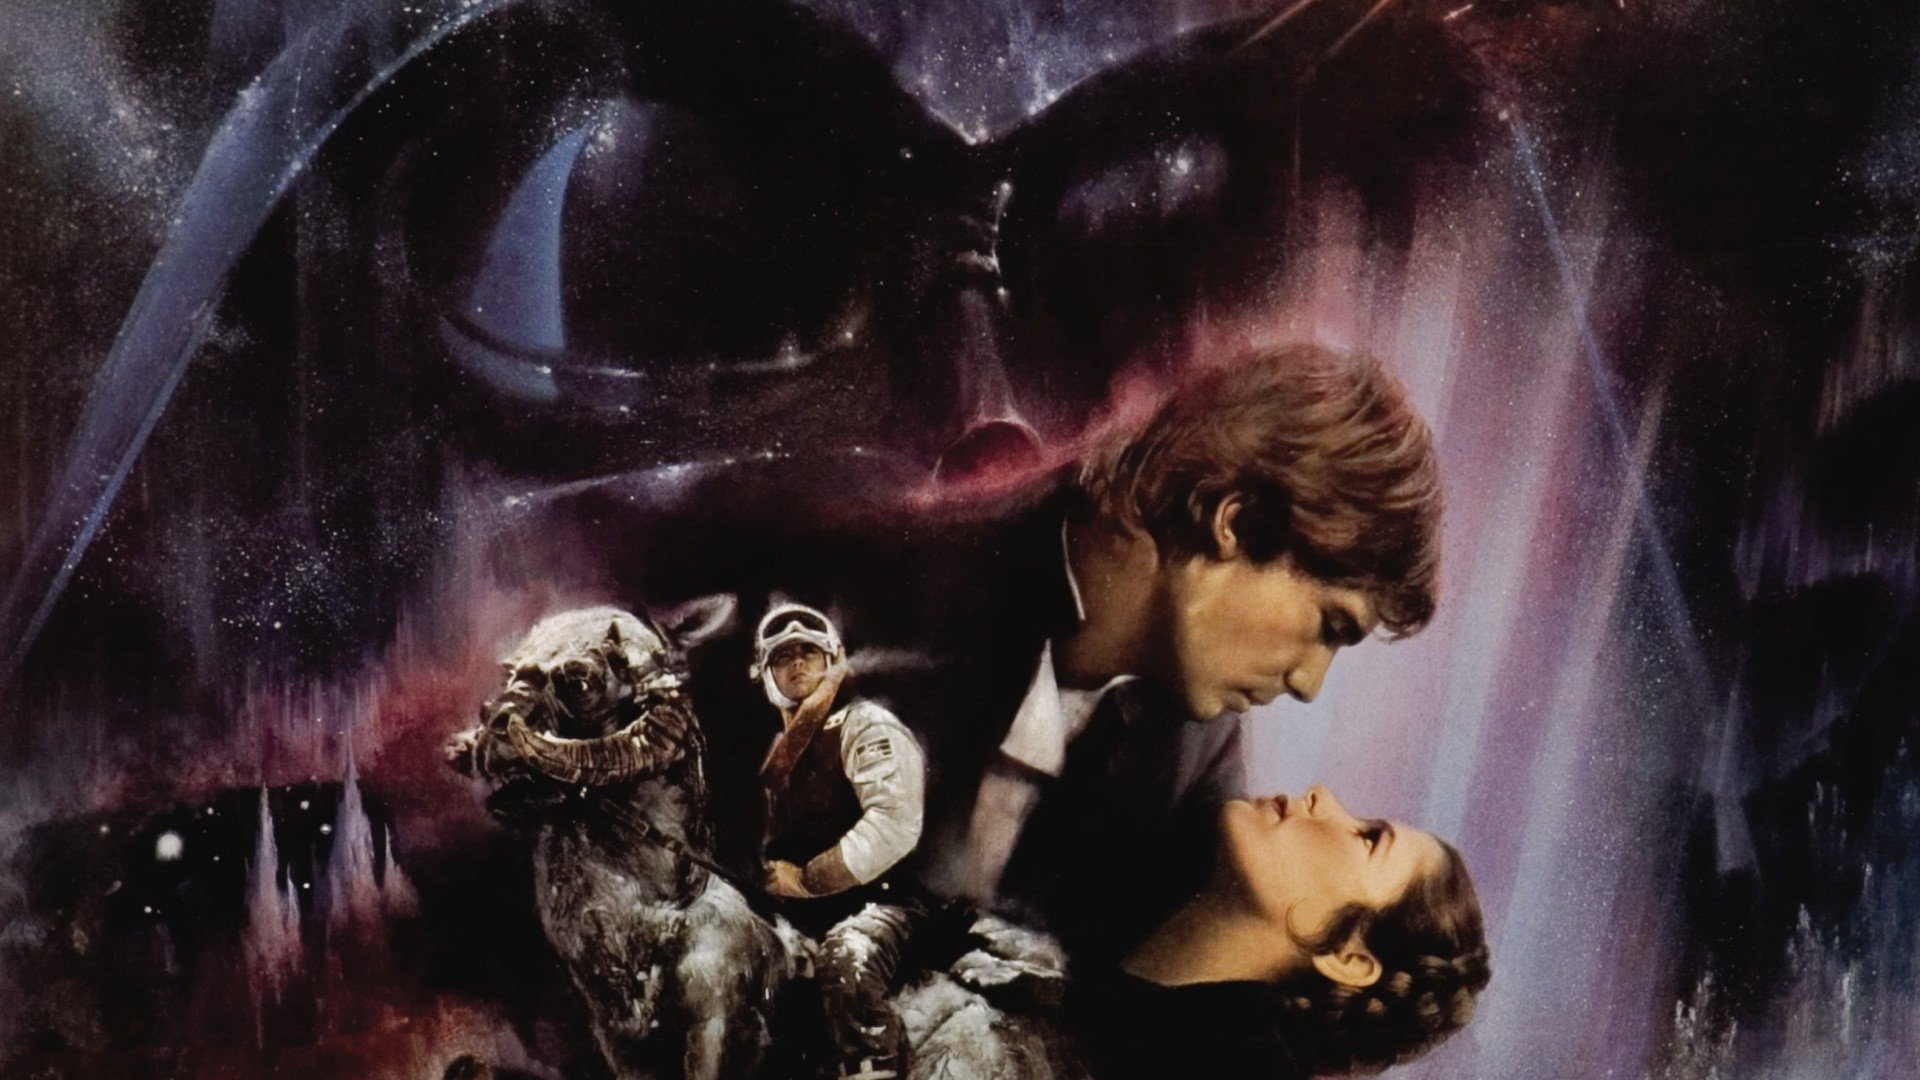 Free Download Download Star Wars Episode 5 V The Empire Strikes